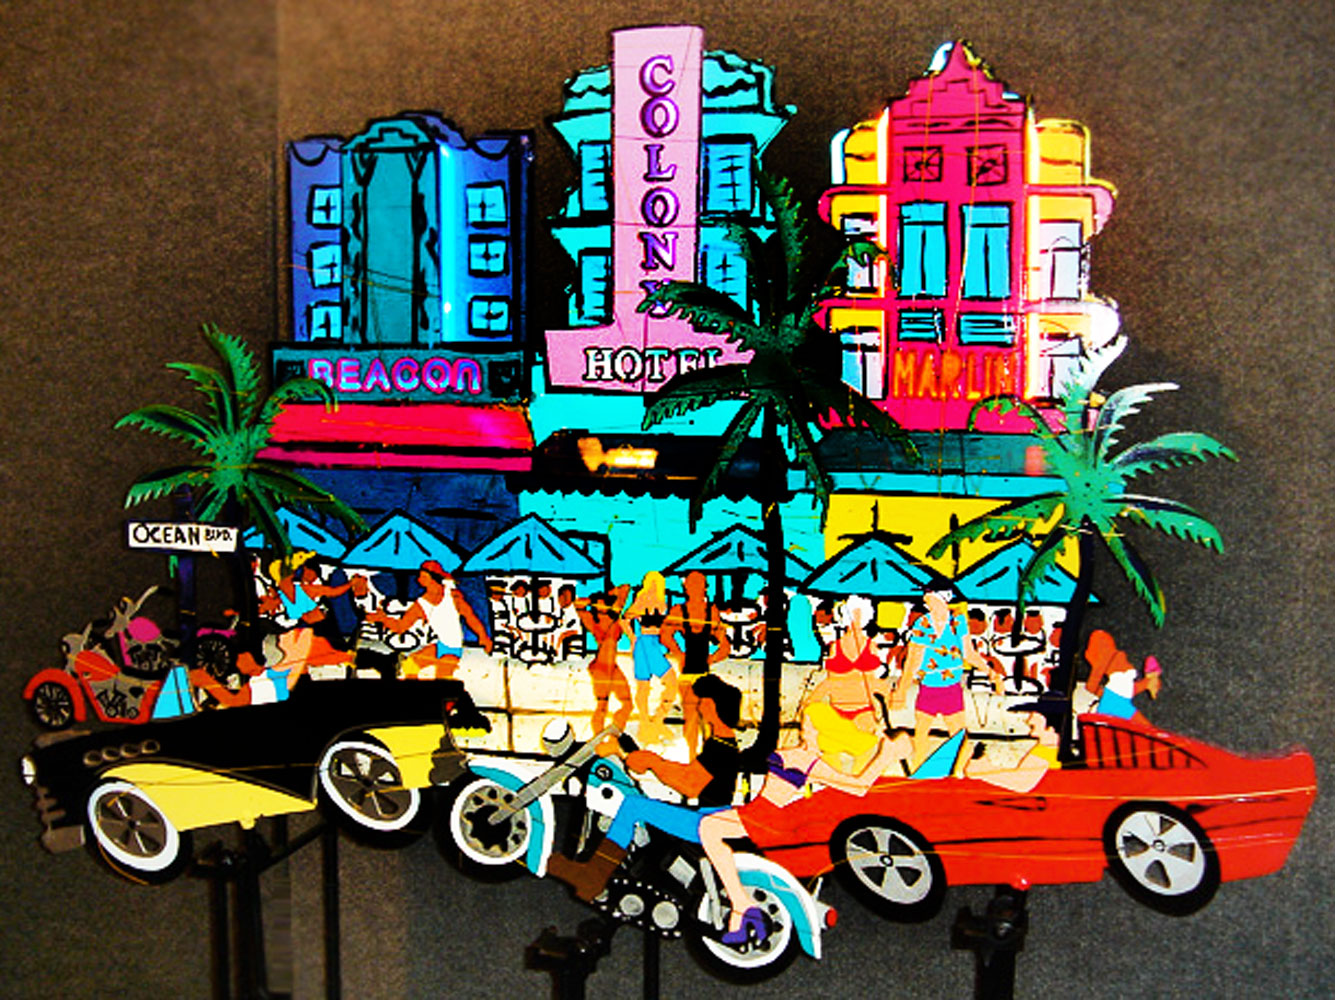 South Beach Kool Neon Unique Kinetic Sculpture 1997 42x40x12